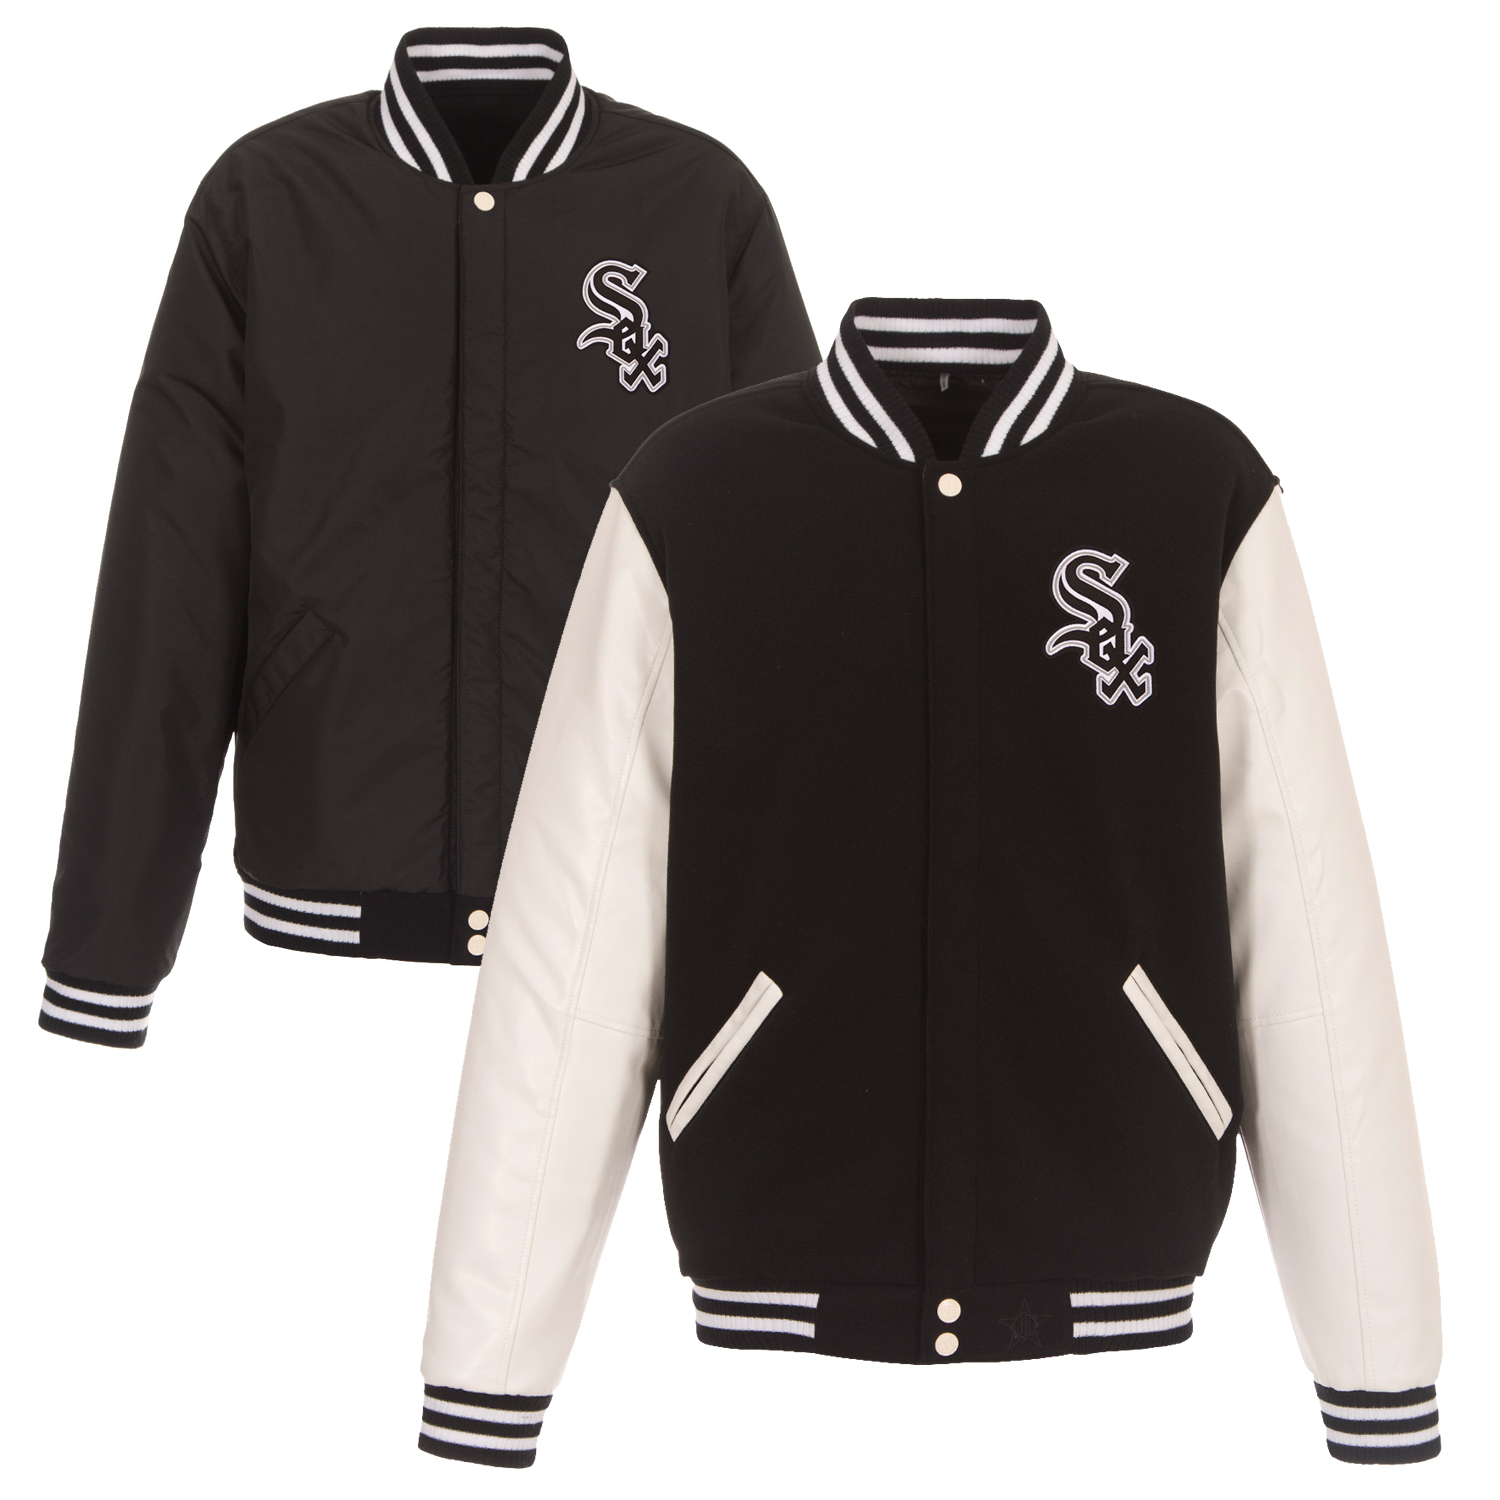 Chicago White Sox JH Design Reversible Fleece Jacket with Faux Leather Sleeves - Black